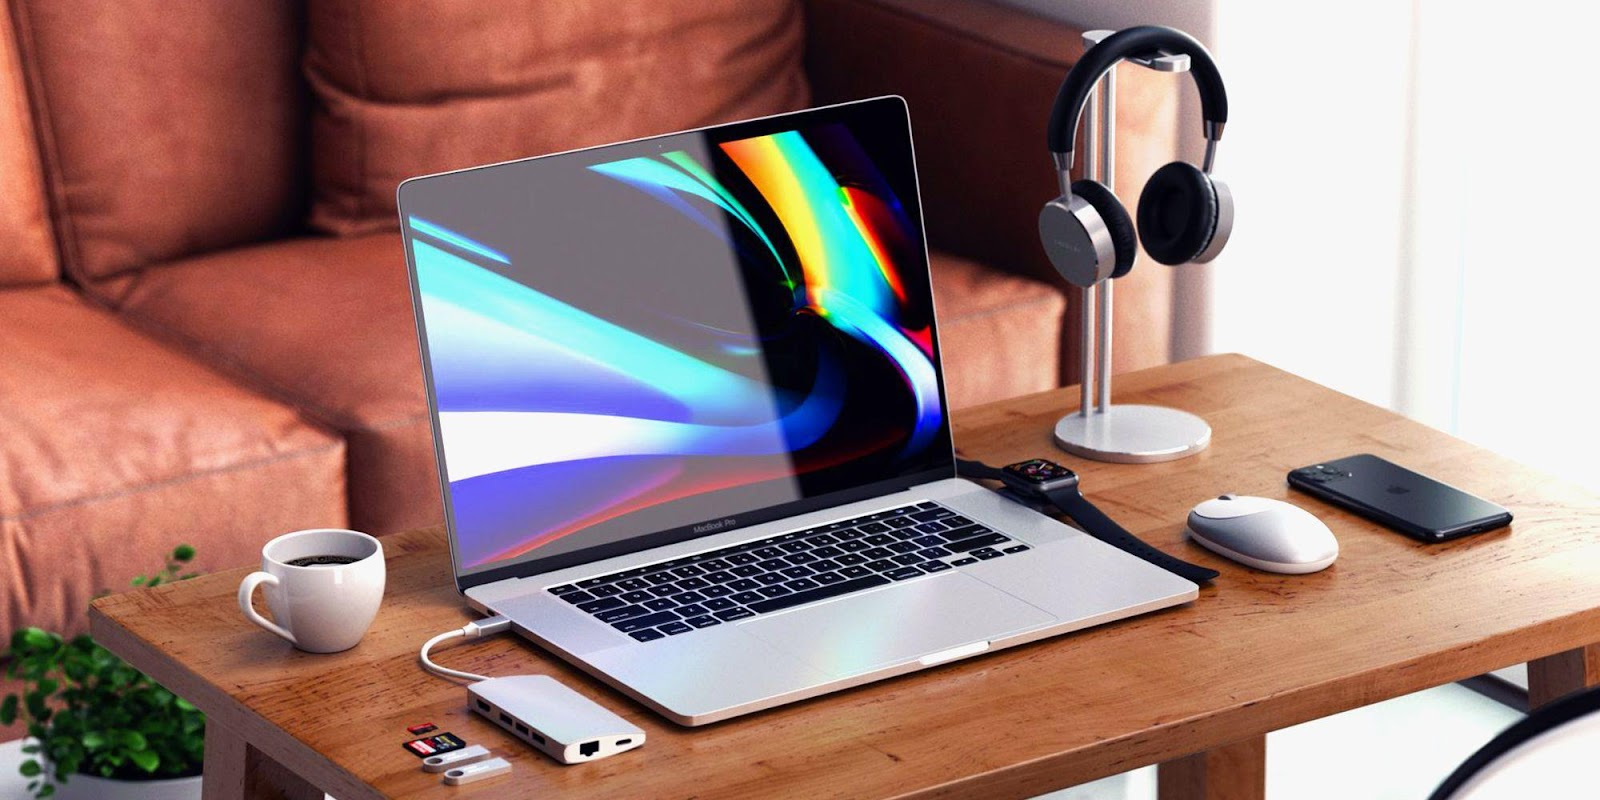 20 Best Apple Macbook & Macbook Pro Accessories to Buy in 2020